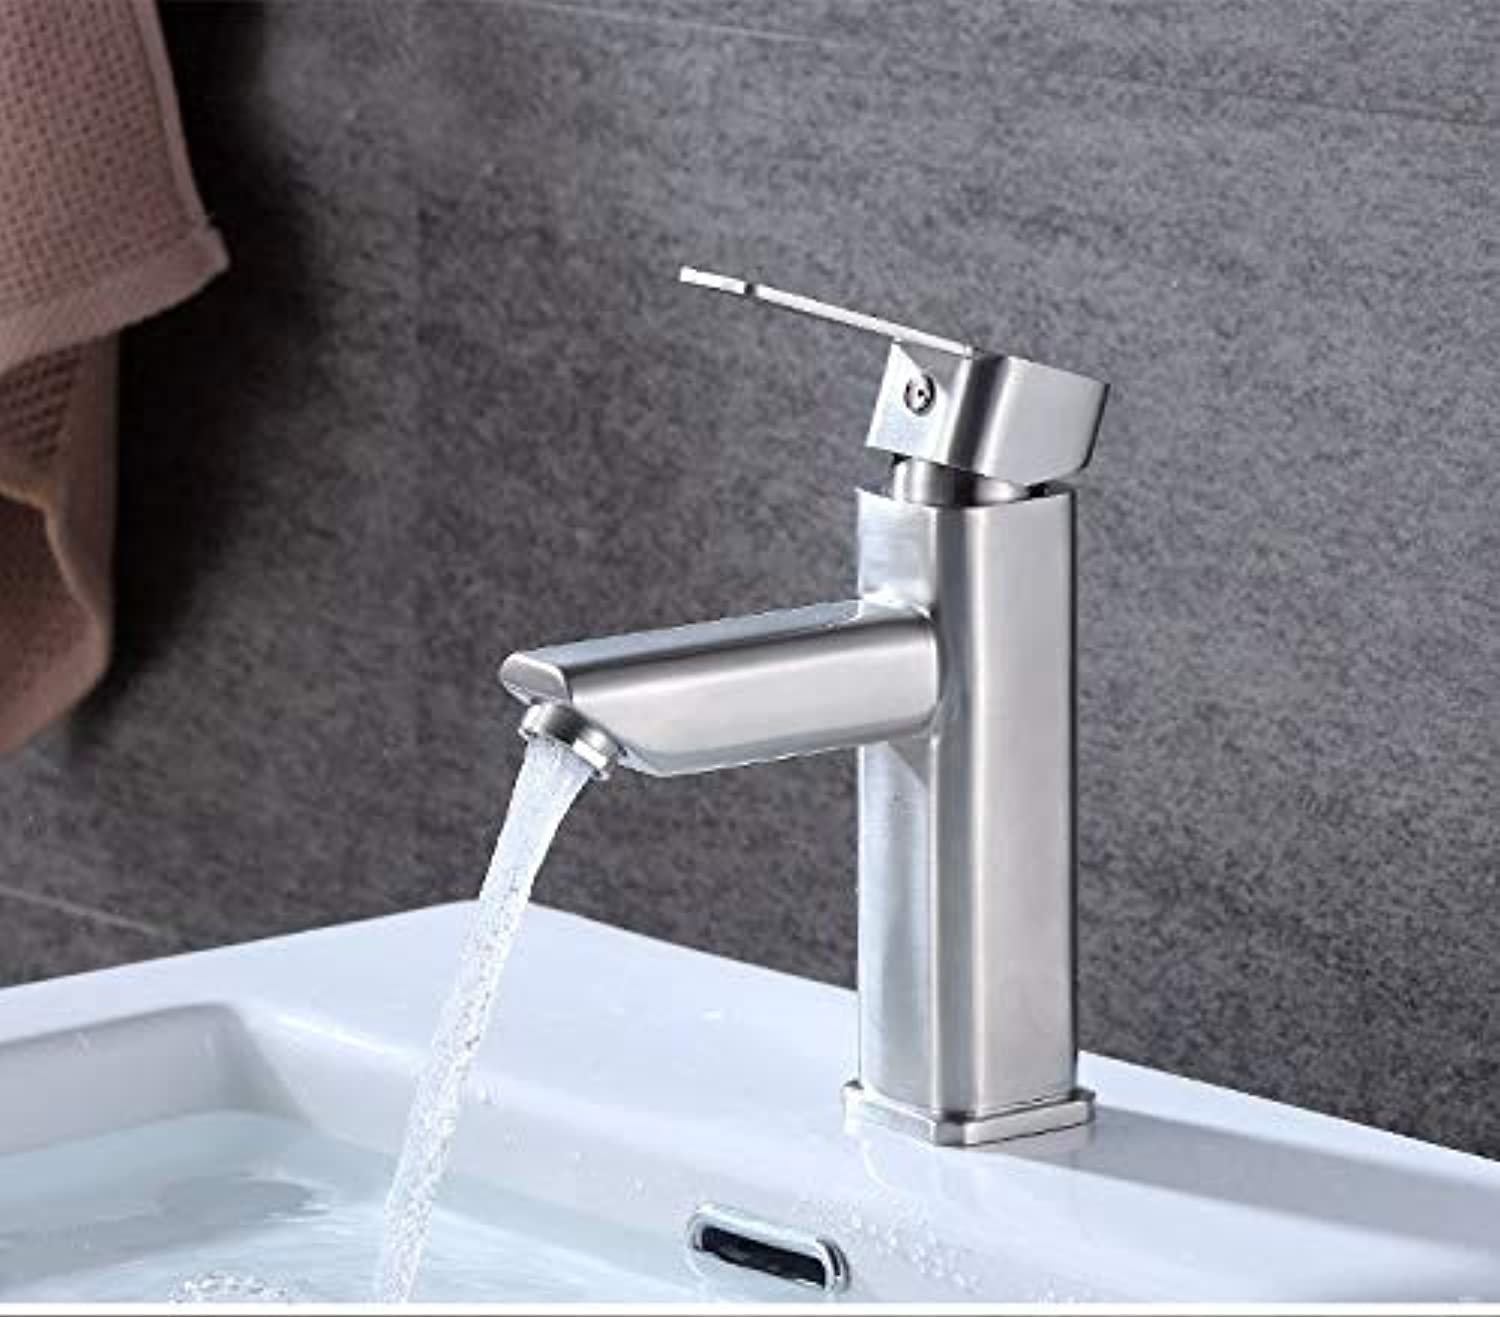 Stainless Steel Brushed Four Sides Basin Single Hole Faucet Bathroom Wash Basin Wash Hot and Cold Water Mixing Valve Bathroom